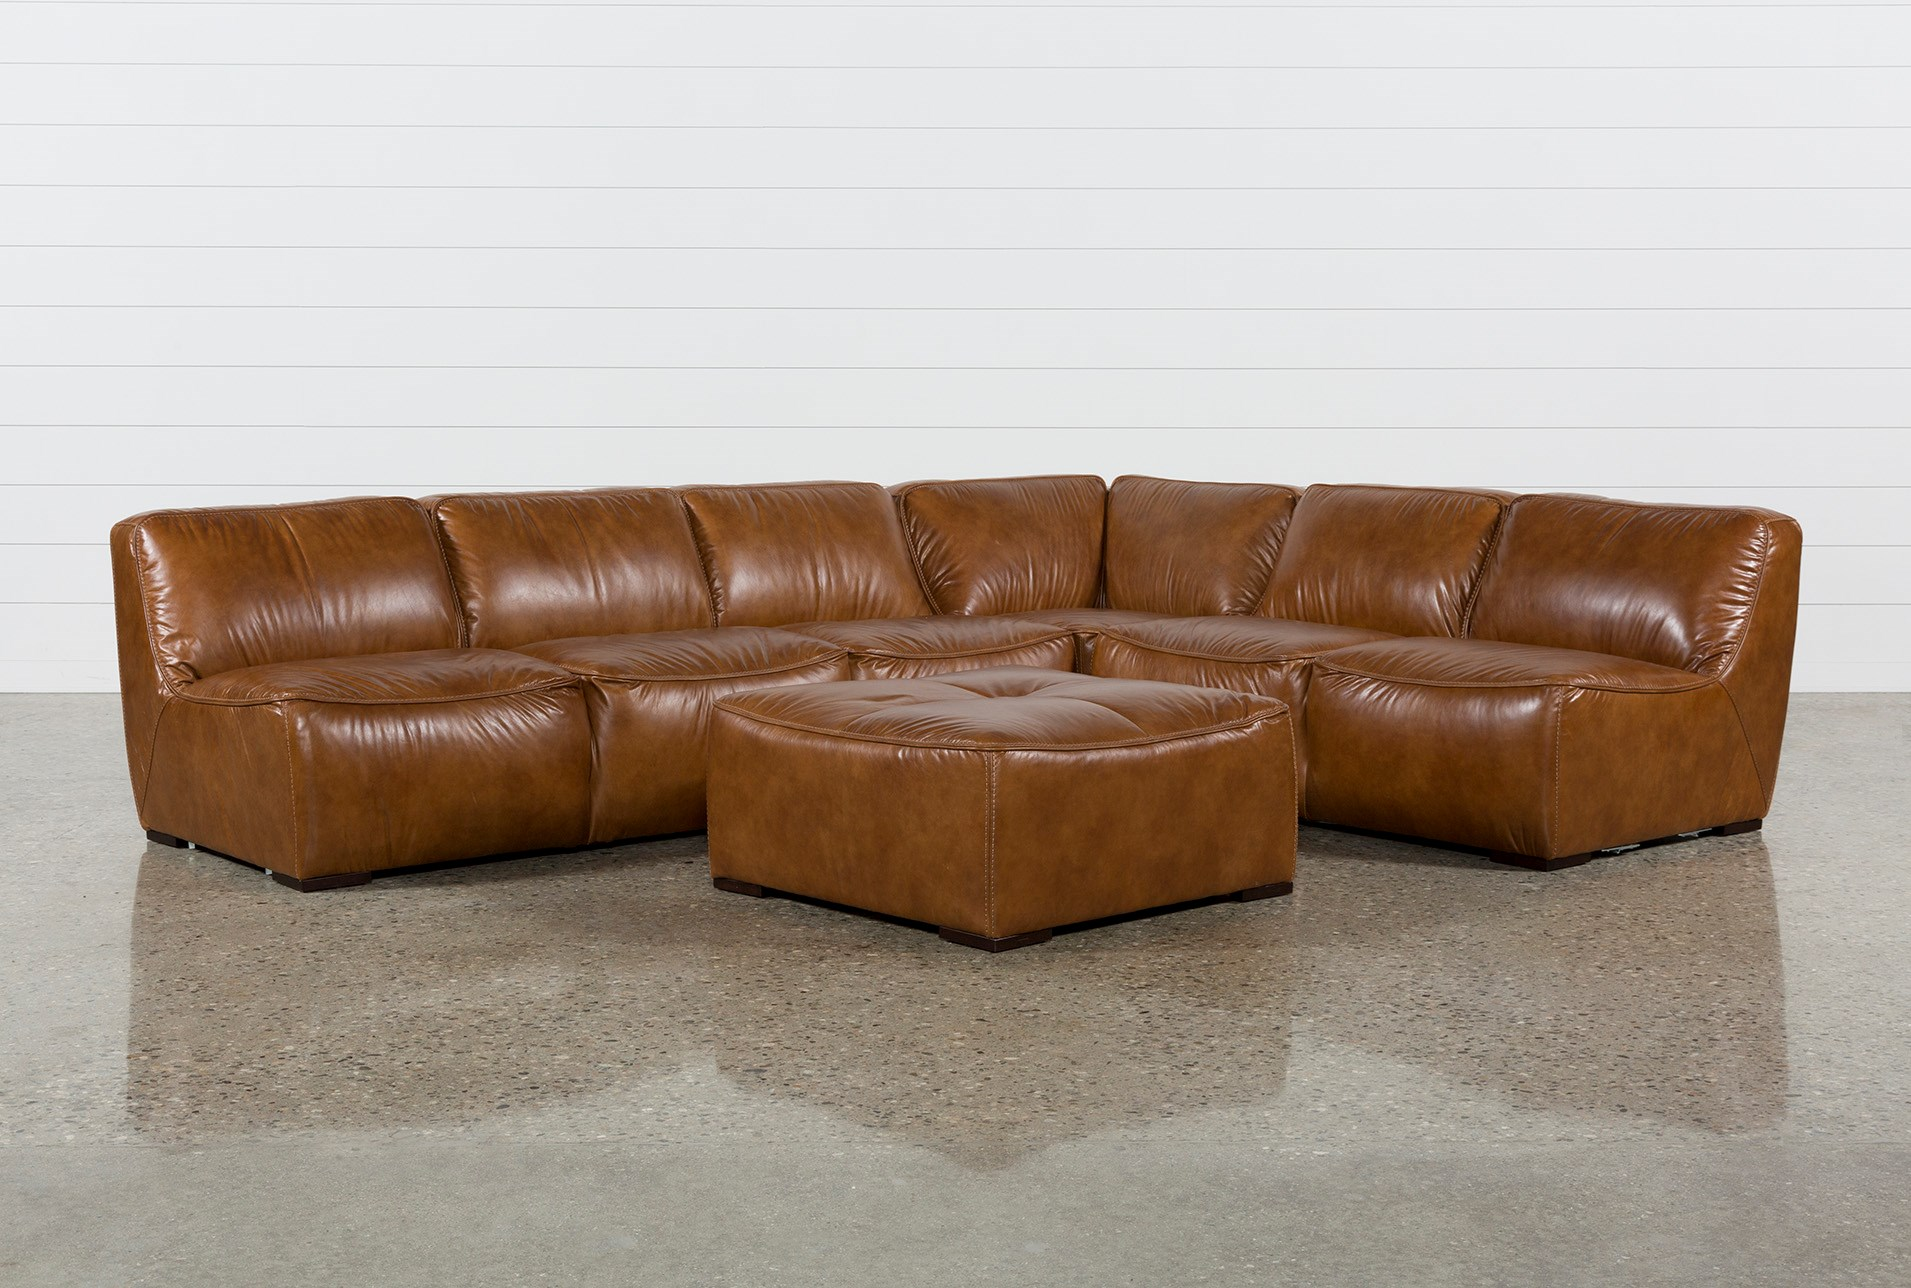 Burton Leather 3 Piece Sectional W Ottoman Qty 1 Has Been Successfully Added To Your Cart